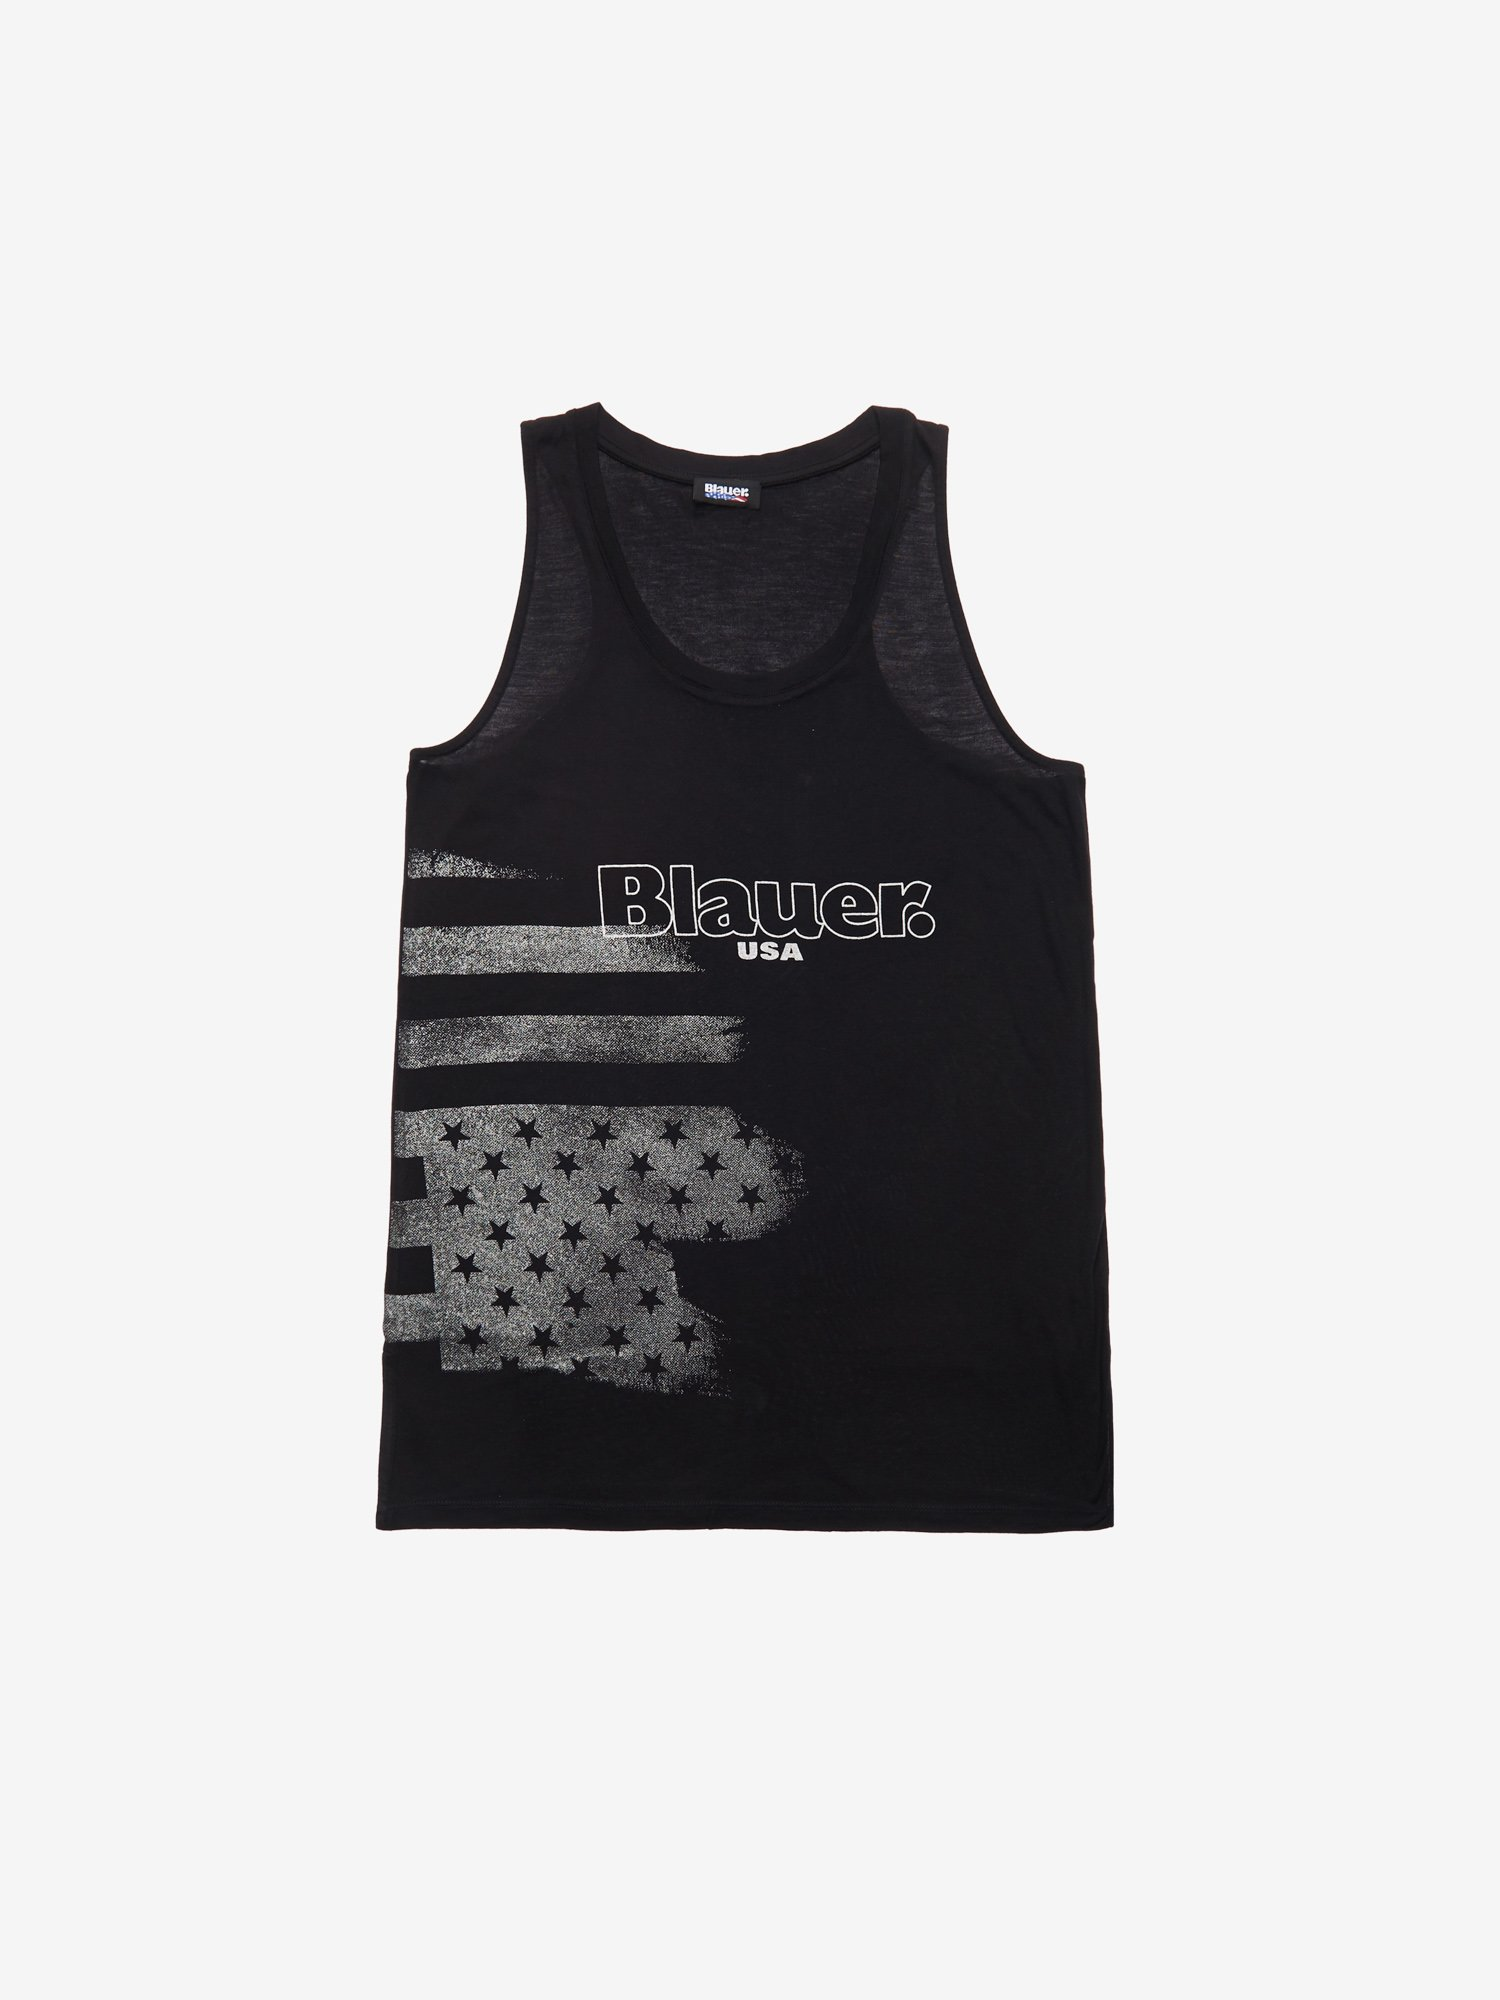 FLAG PRINT TANK TOP - Blauer